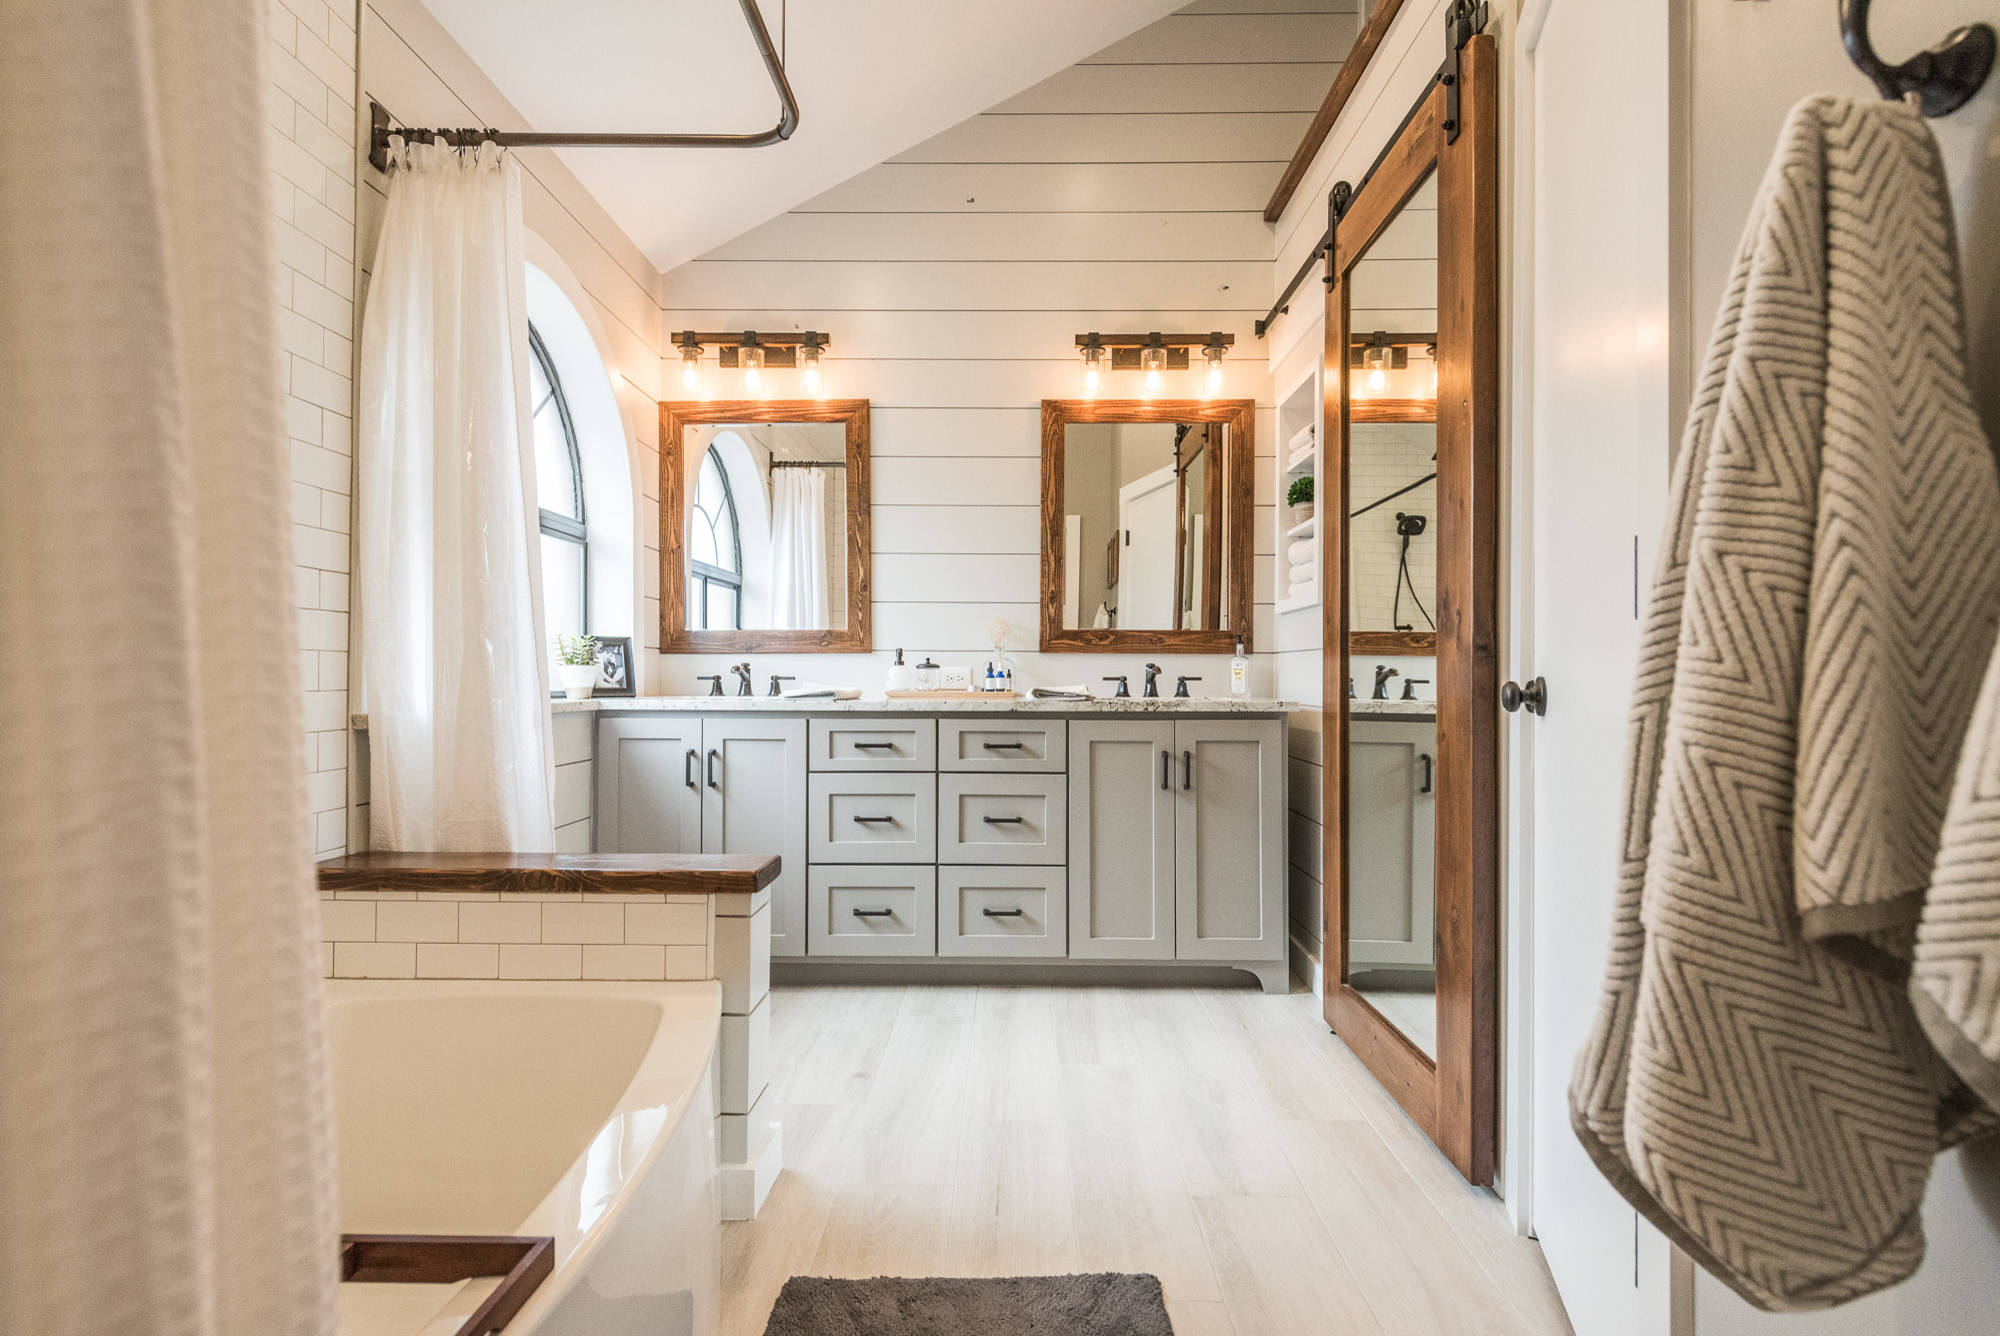 75 Beautiful Farmhouse Bathroom With Granite Countertops Pictures Ideas December 2020 Houzz